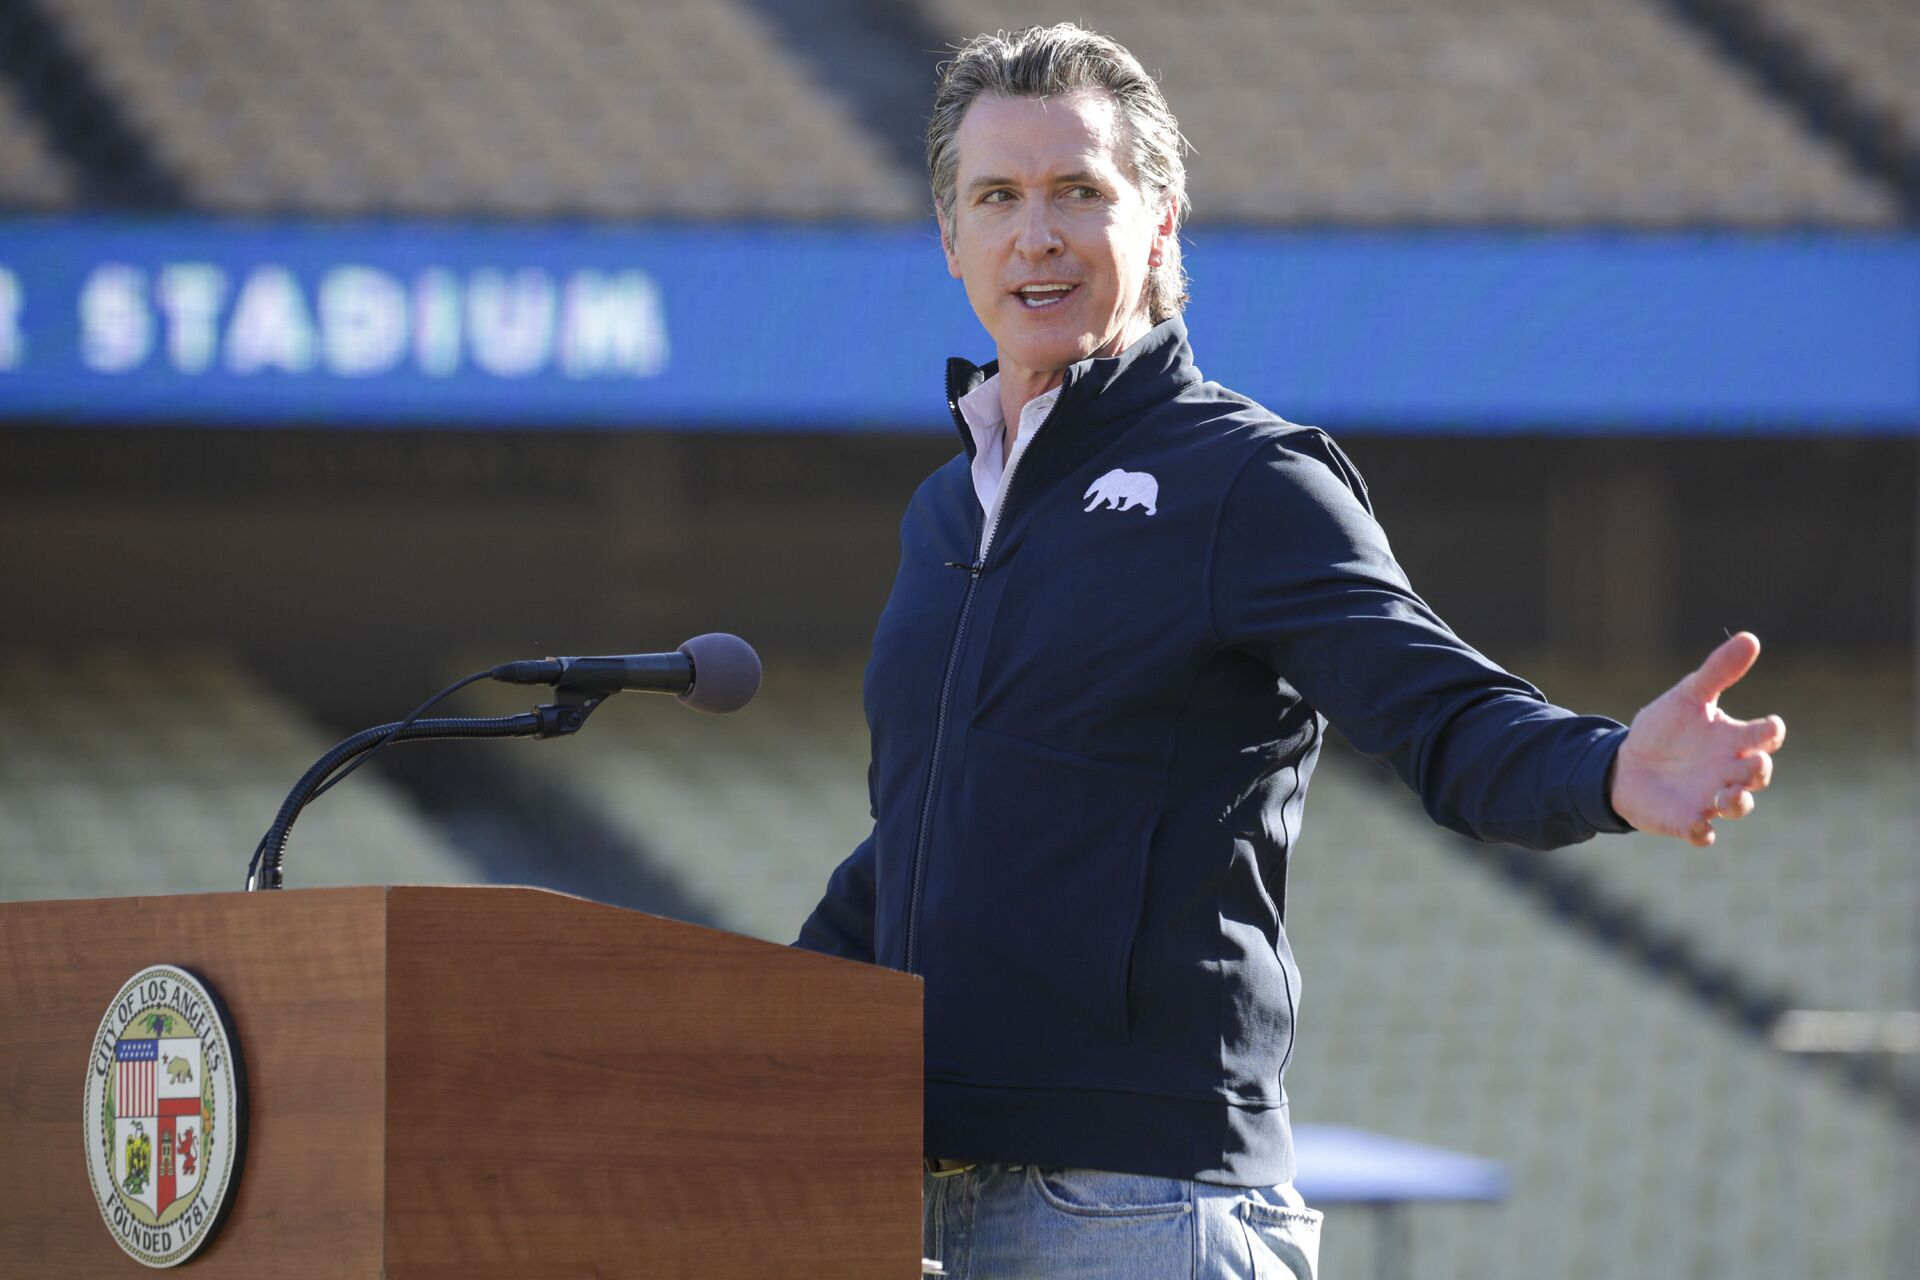 Governor Gavin Newsom addresses a press conference held at the launch of a mass COVID-19 vaccination site at Dodger Stadium on Friday, Jan. 15, 2021, in Los Angeles - Sputnik International, 1920, 07.09.2021